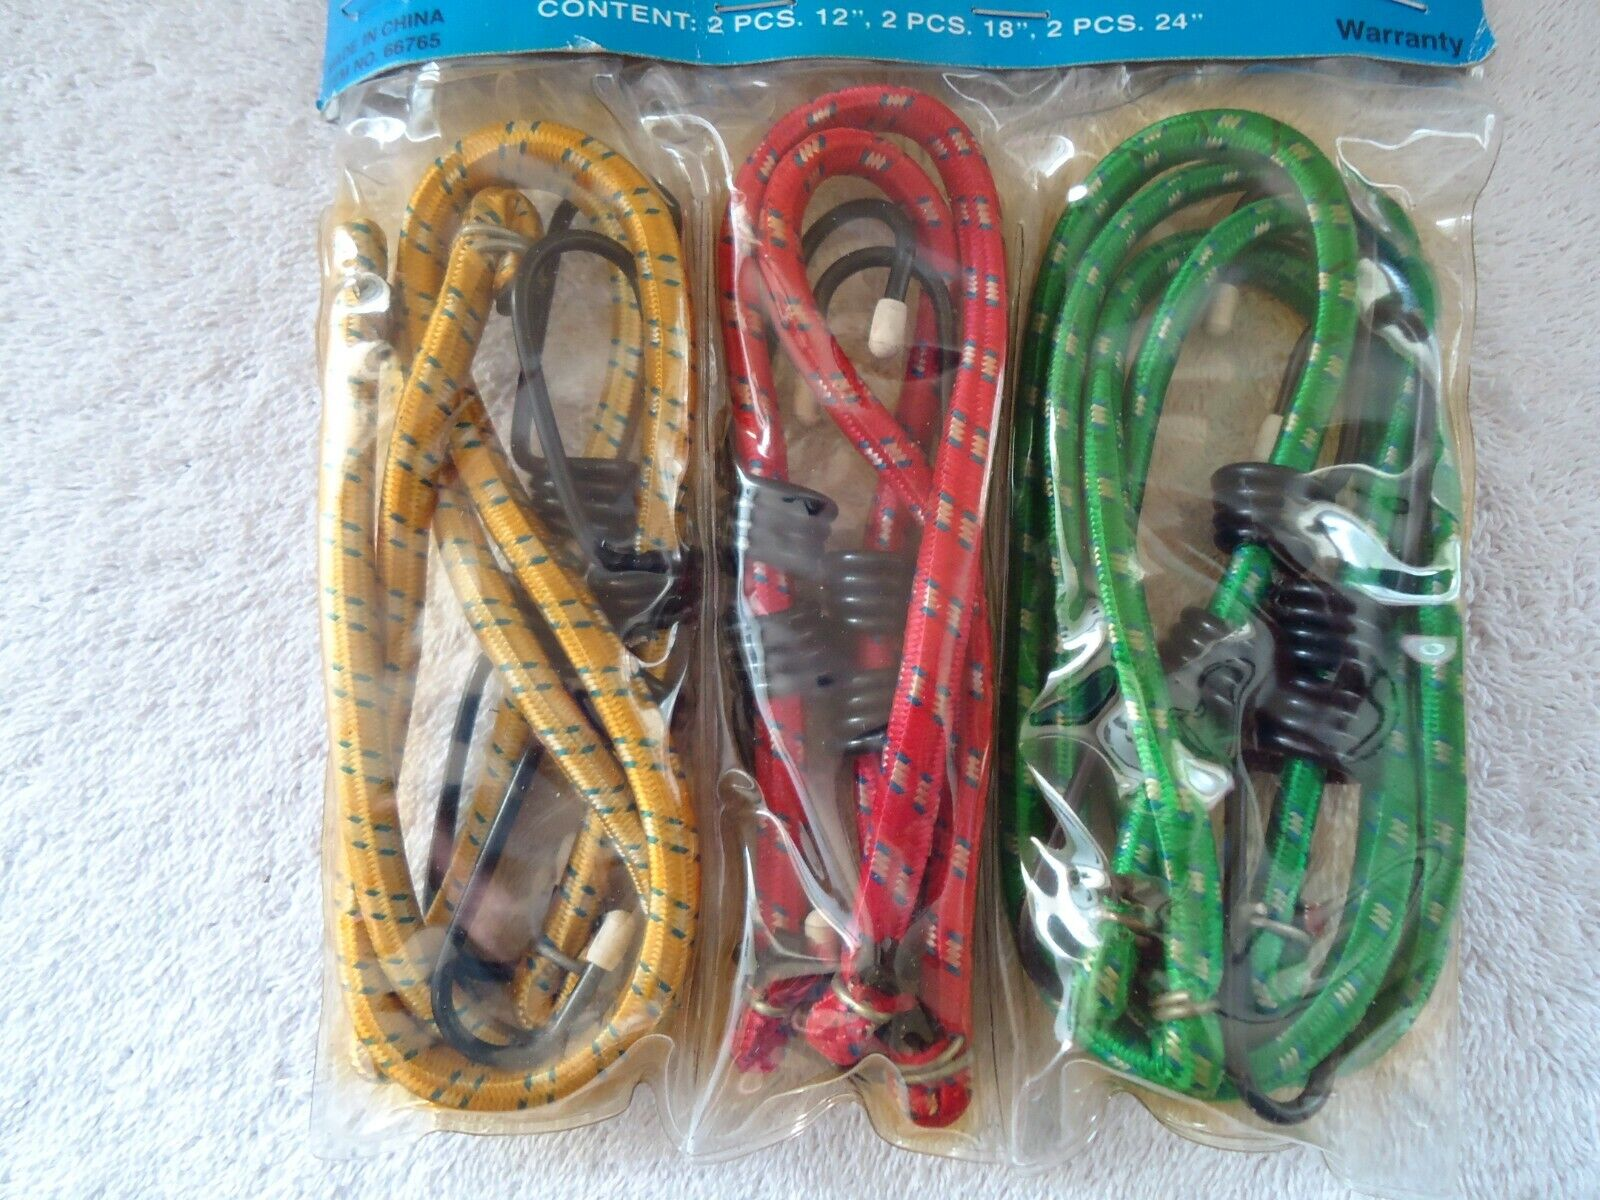 Highland 18 Camouflage Bungee Cord 2 piece 9205100